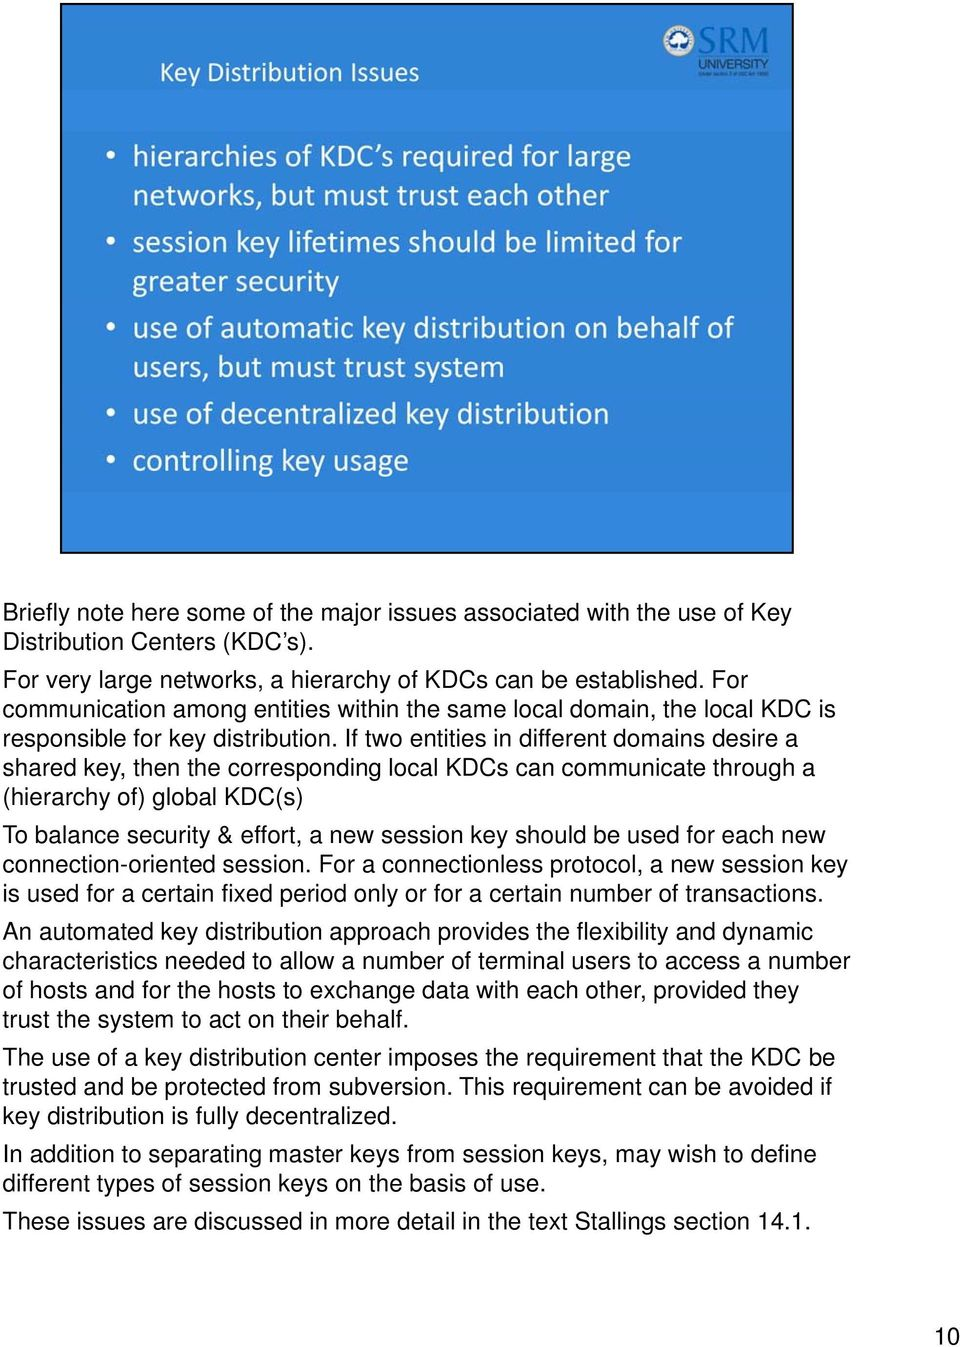 If two entities in different domains desire a shared key, then the corresponding local KDCs can communicate through a (hierarchy of) global KDC(s) To balance security & effort, a new session key